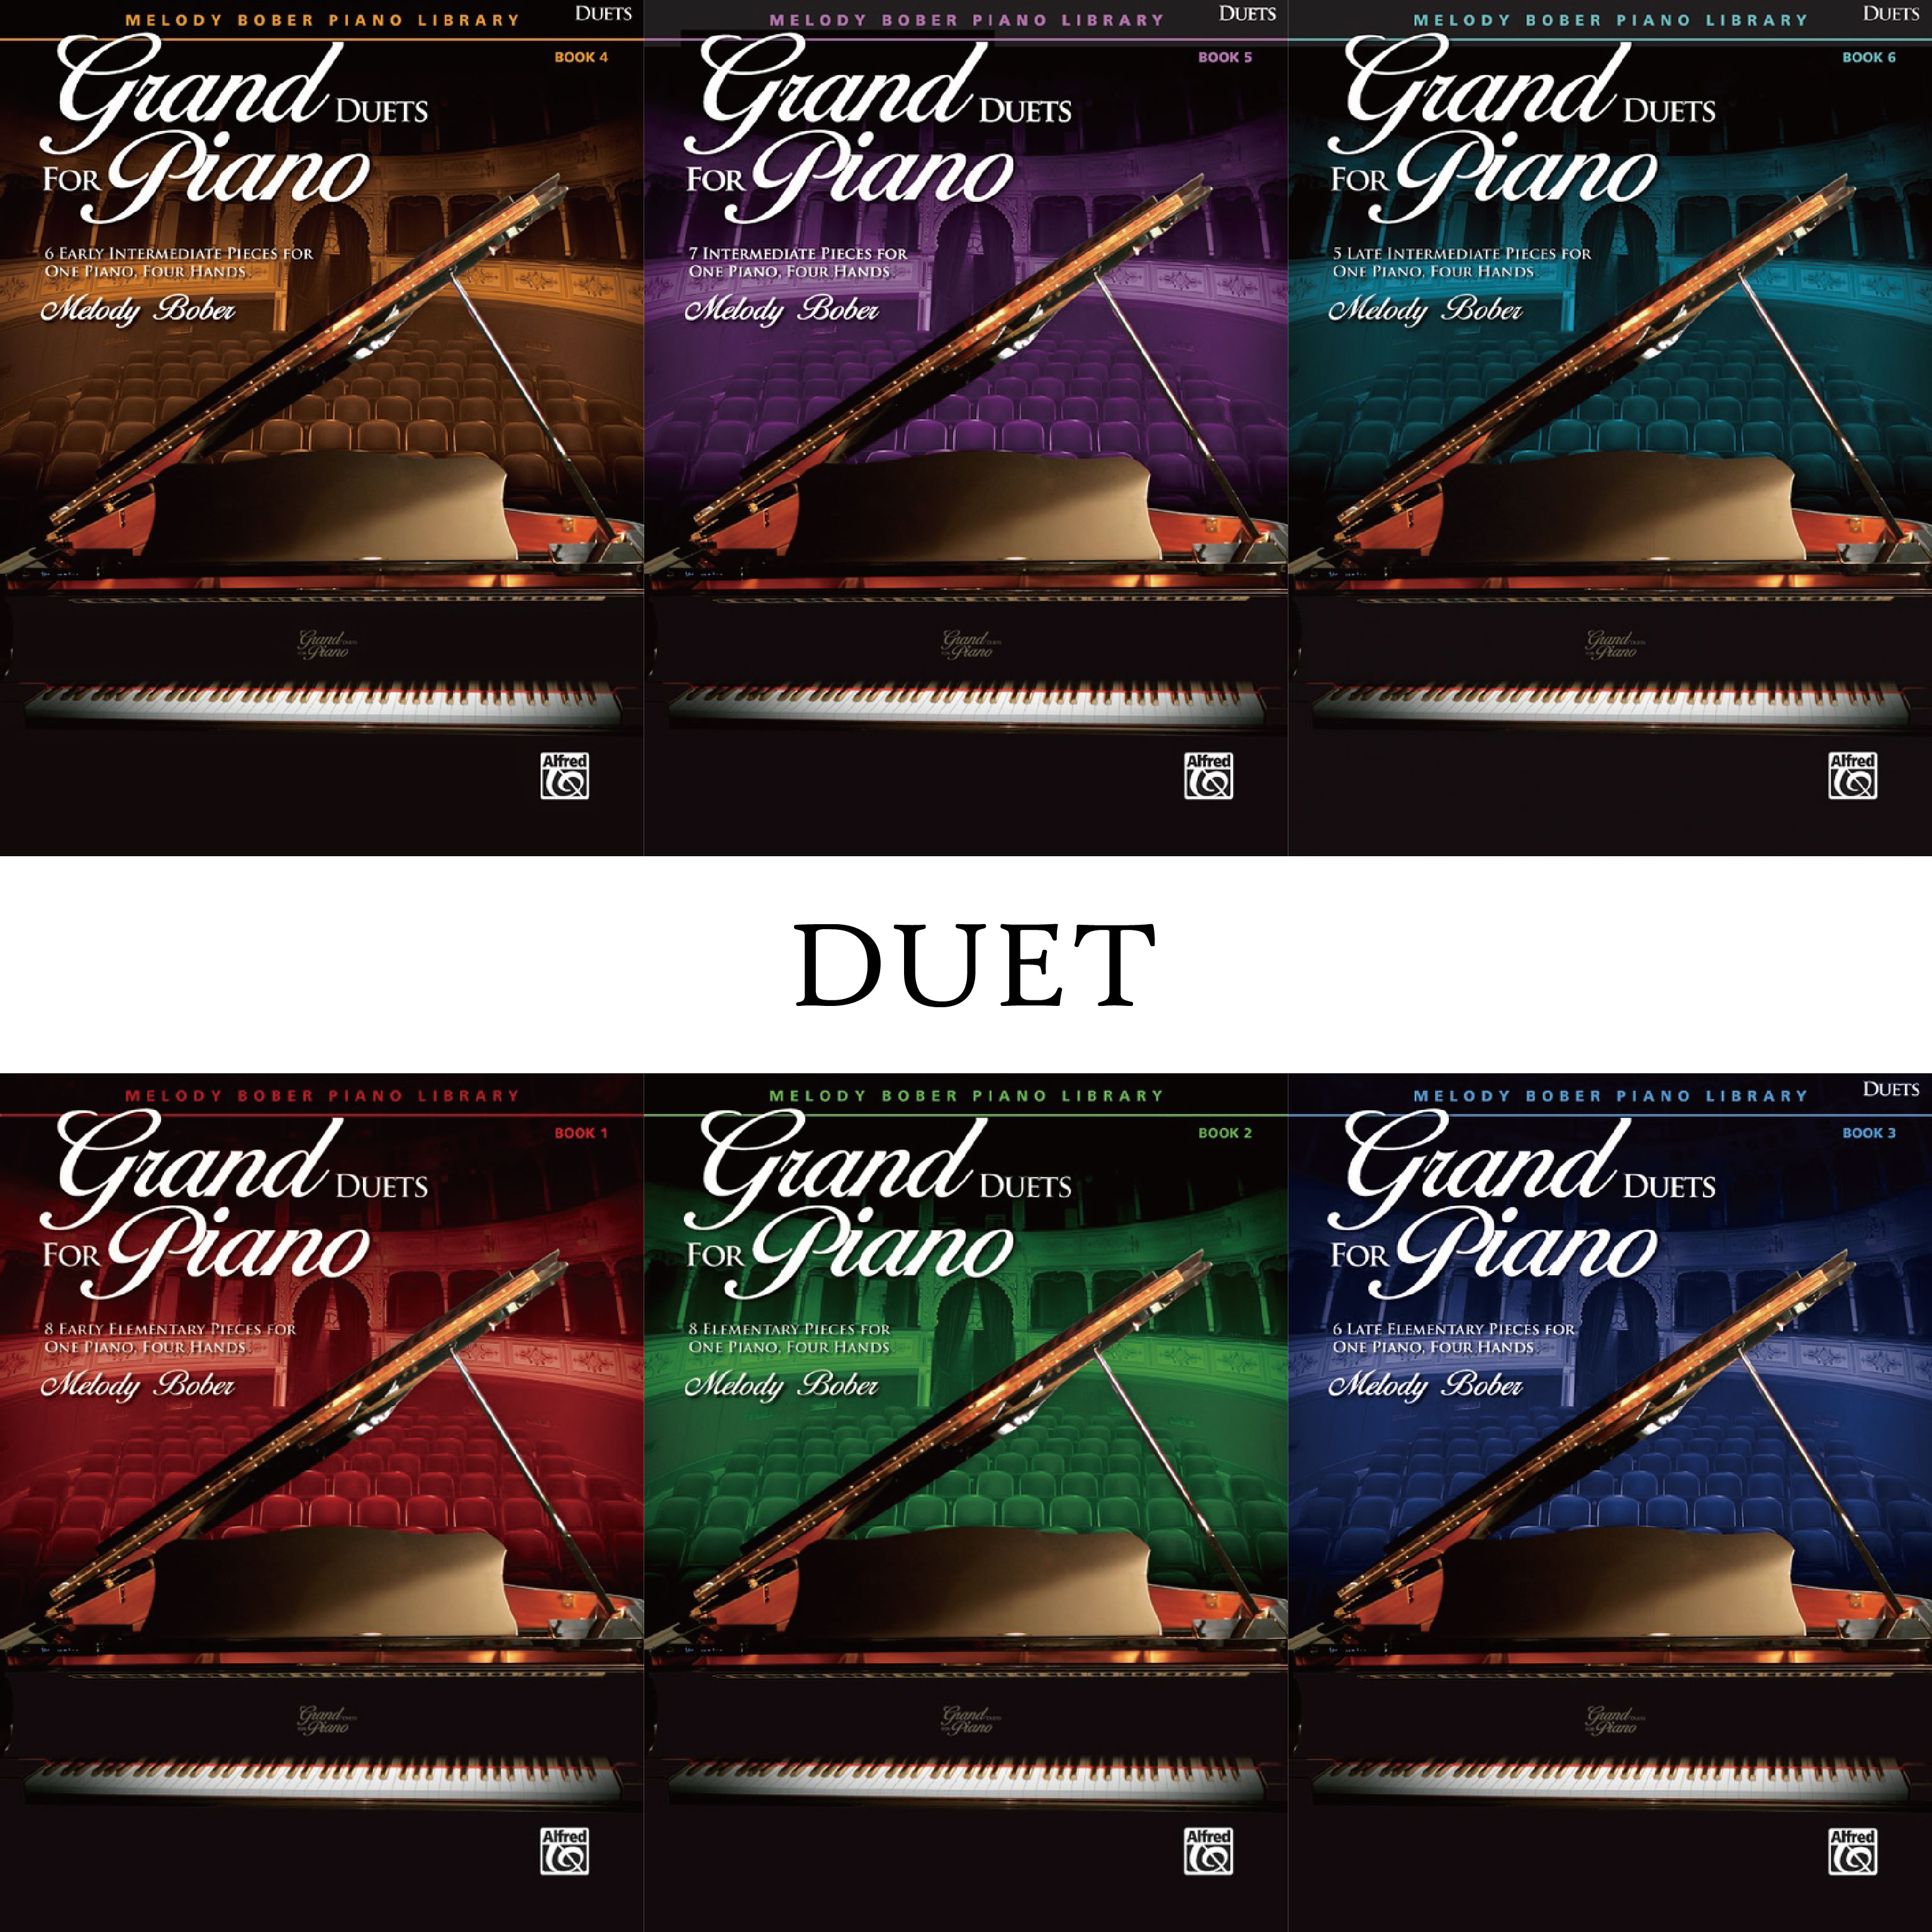 Grand DUETS for Piano 1